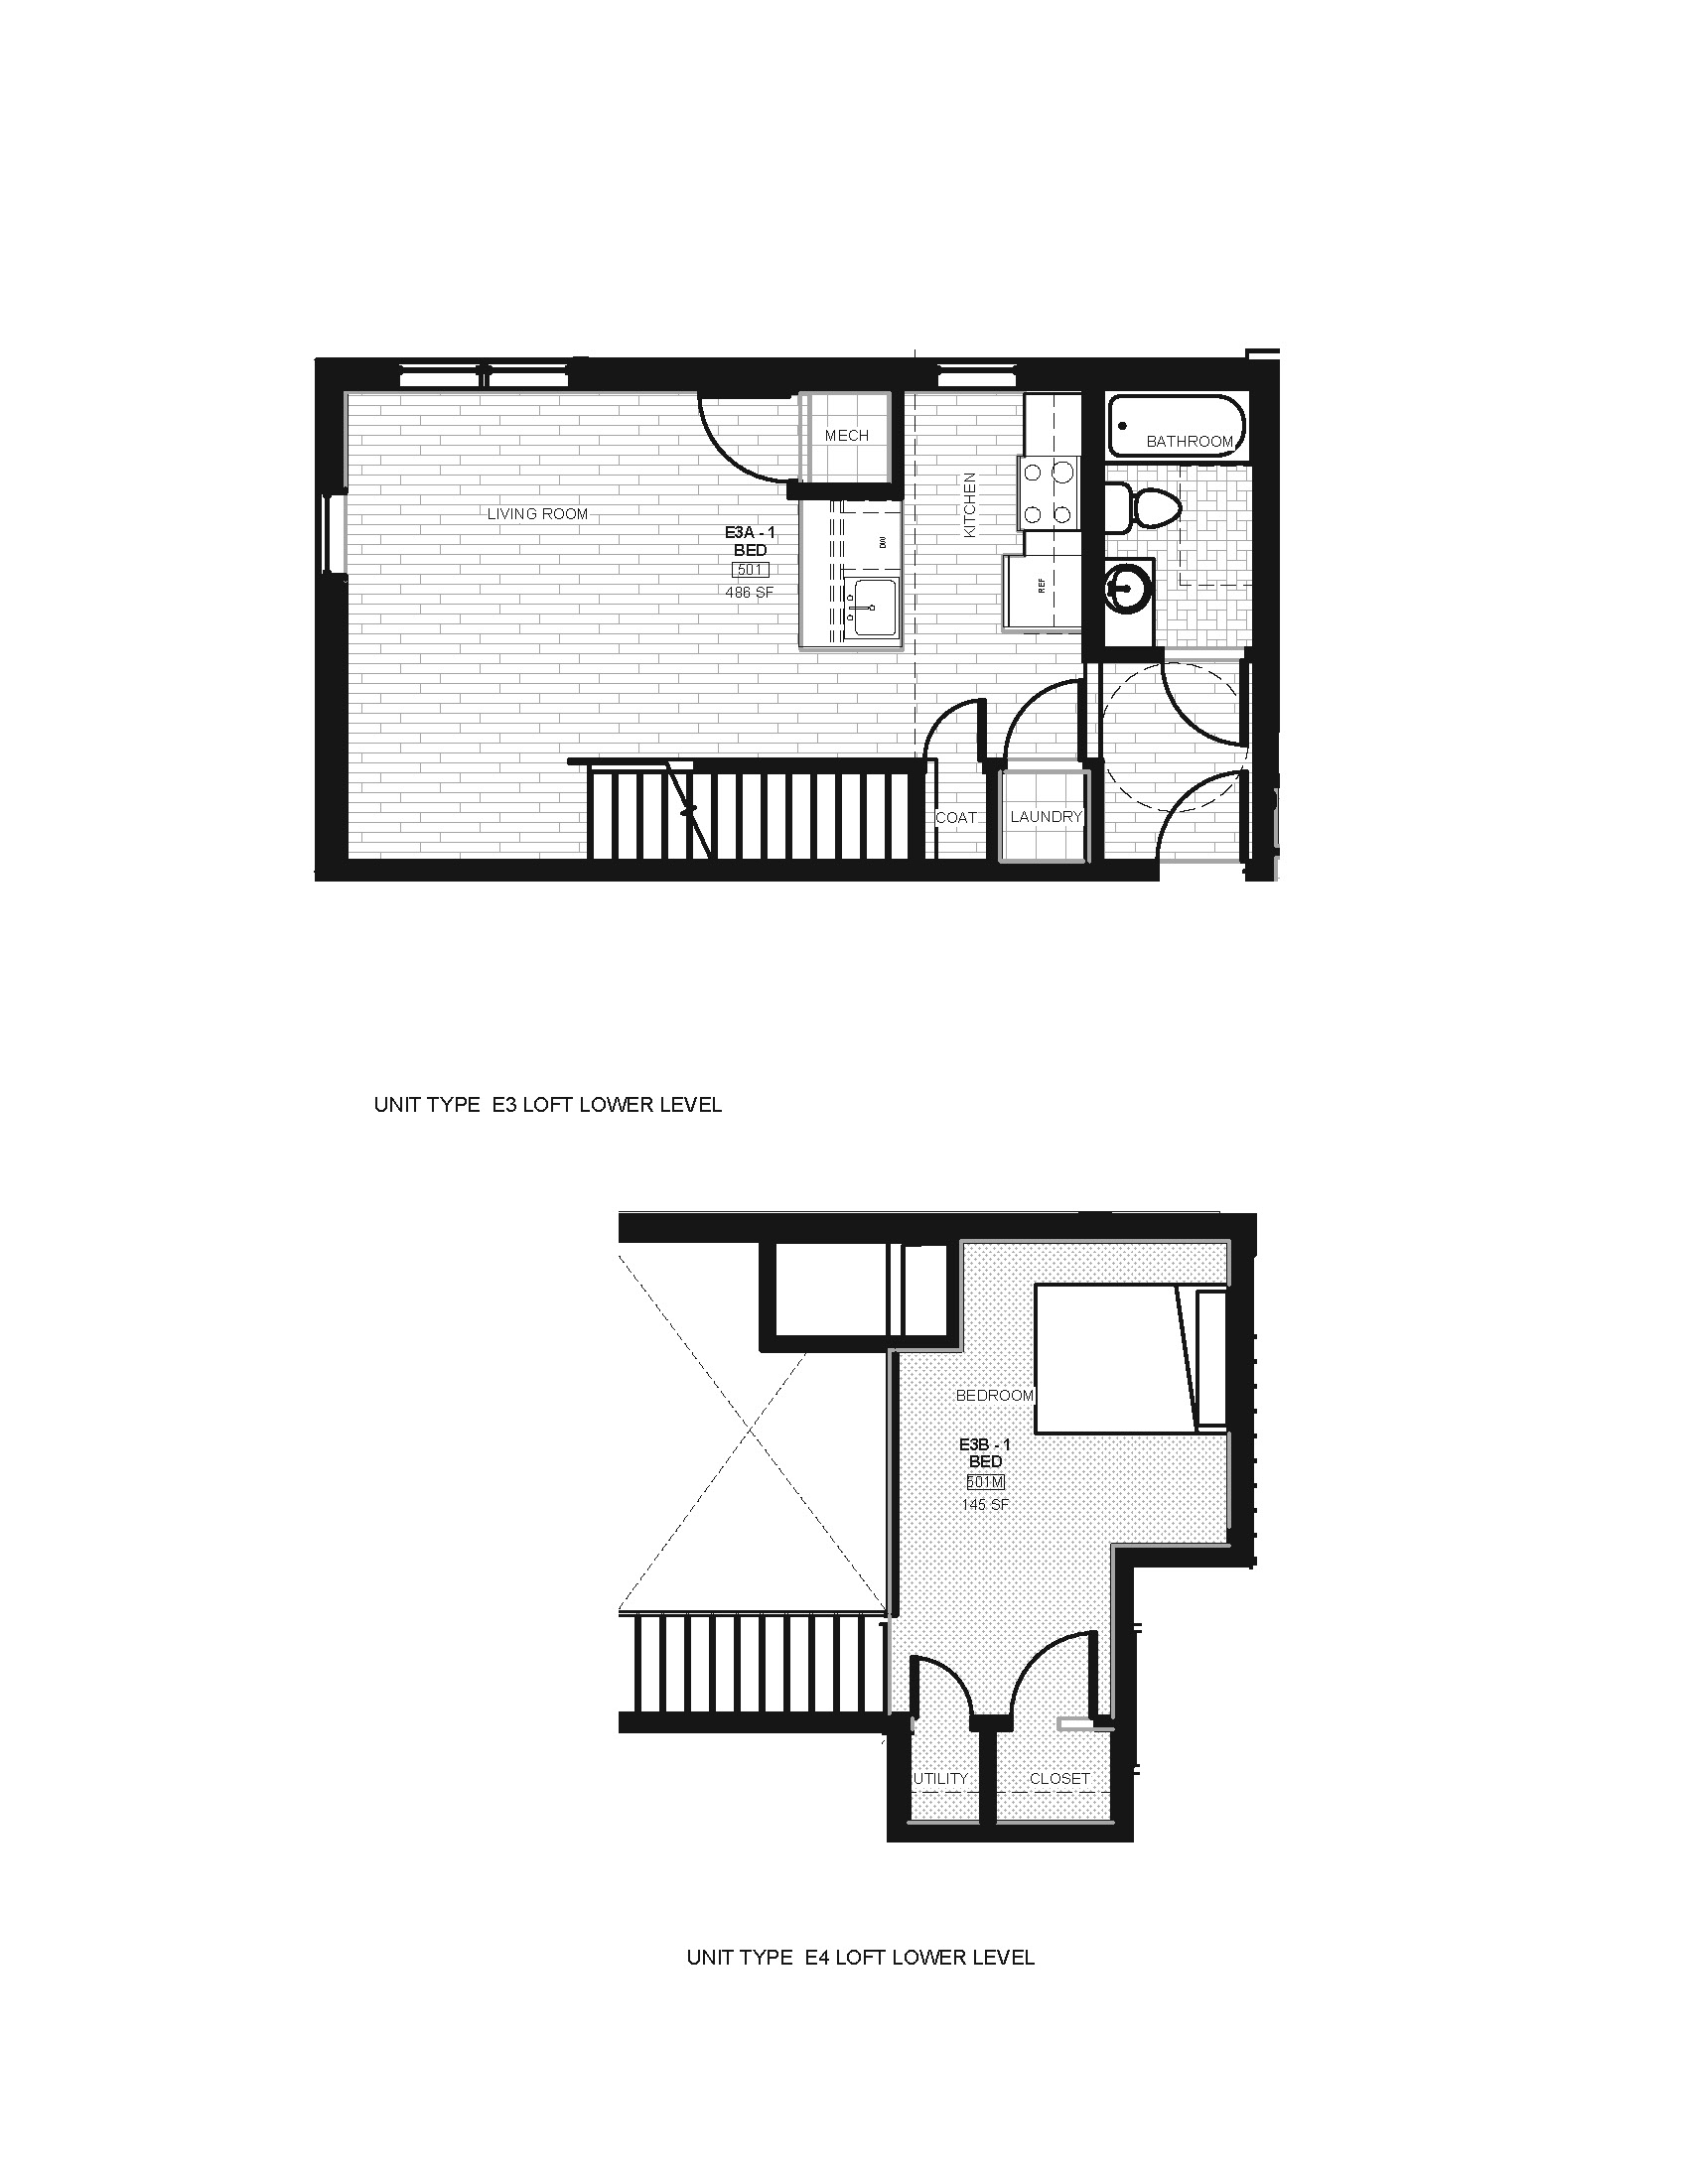 Floor Plans Of Franklin Lofts Amp Flats In Baltimore Md